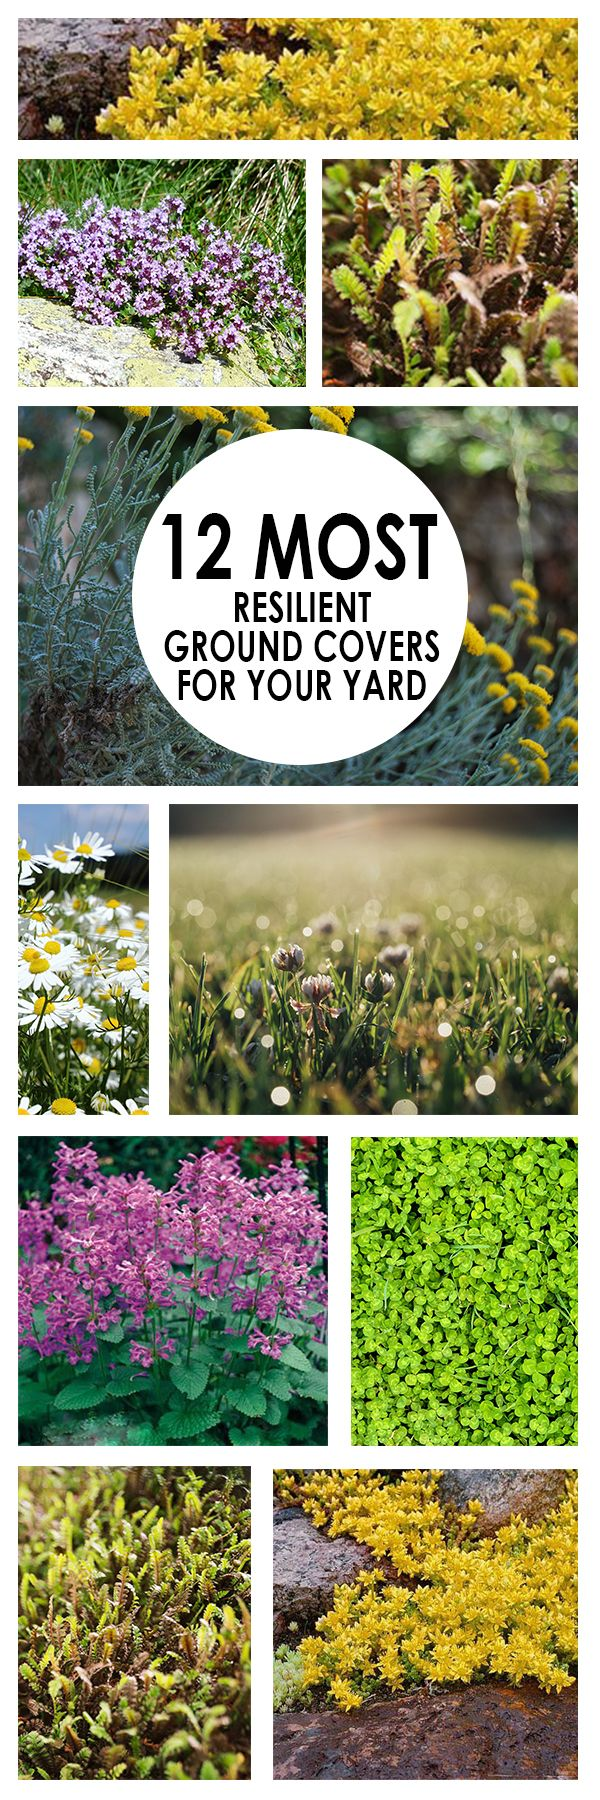 Ground covers aren't used very often and are sometimes misunderstood. However, they're incredibly useful and beautiful to have around. Ground covers not only help protect the soil and slow down erosion, but they also can add color and even nice smells. Here are some of the best ground covers to have around!